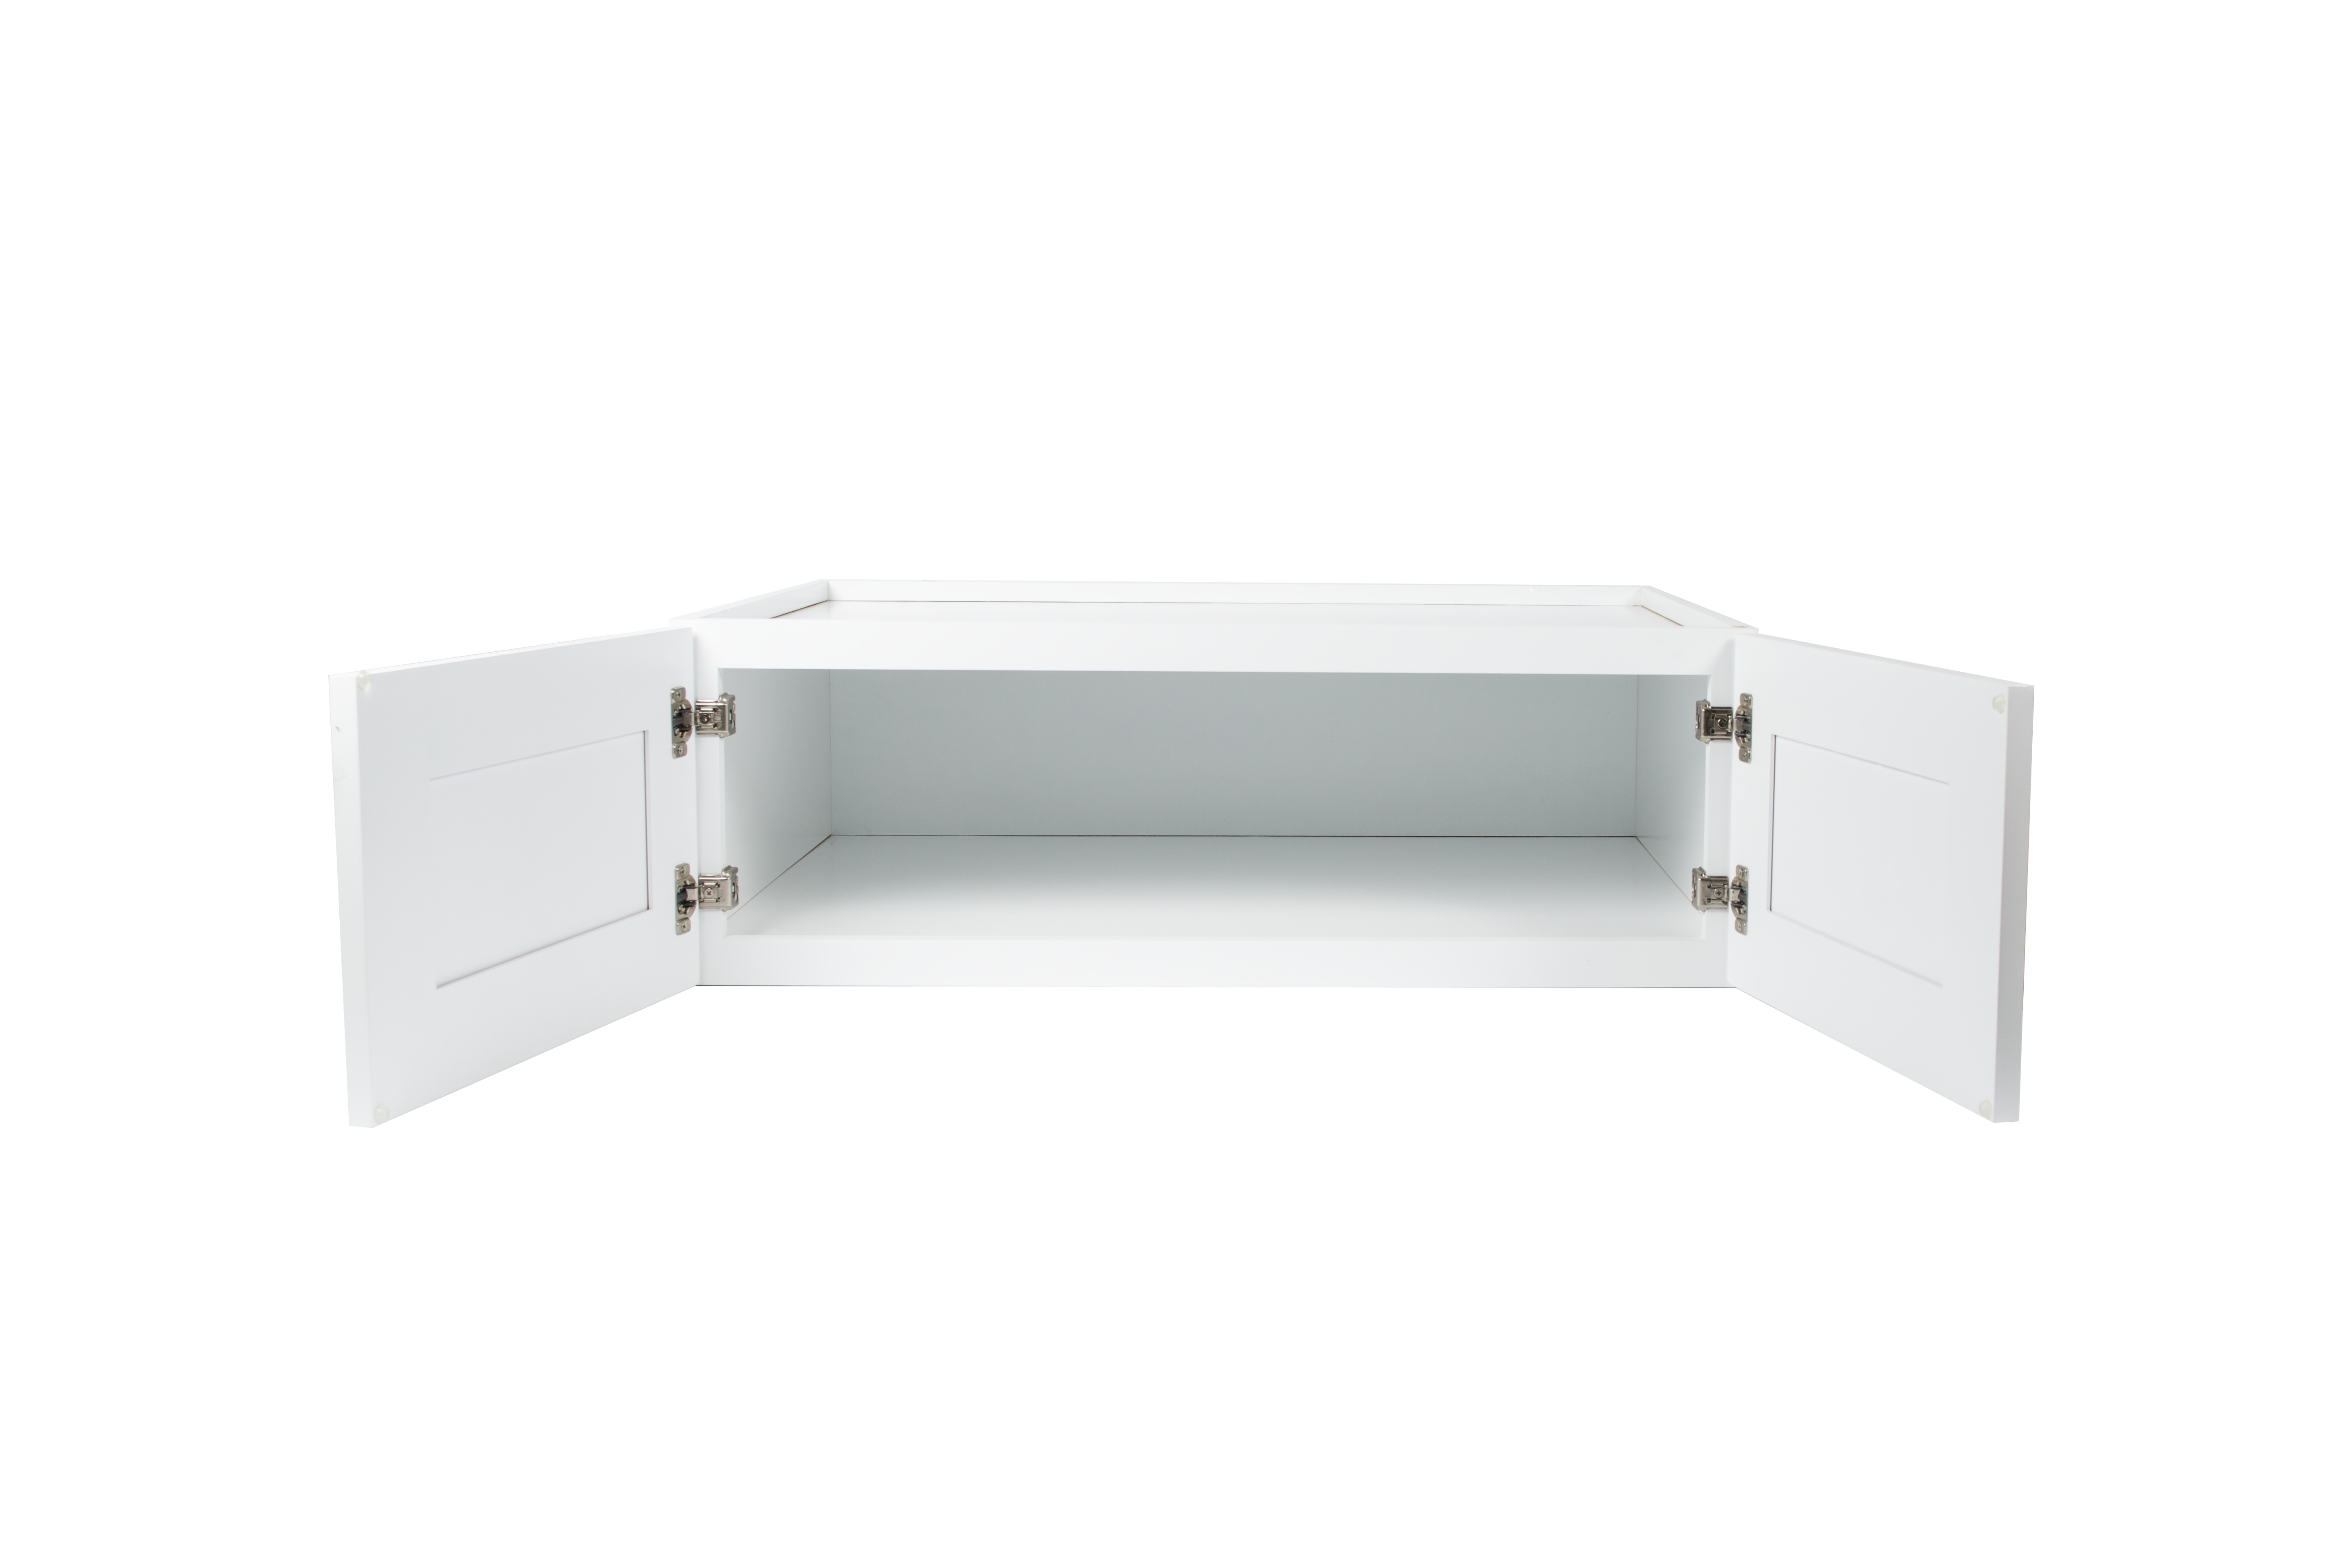 Ready to Assemble 30x15x24 in. Shaker High Double Door Wall Cabinet in White